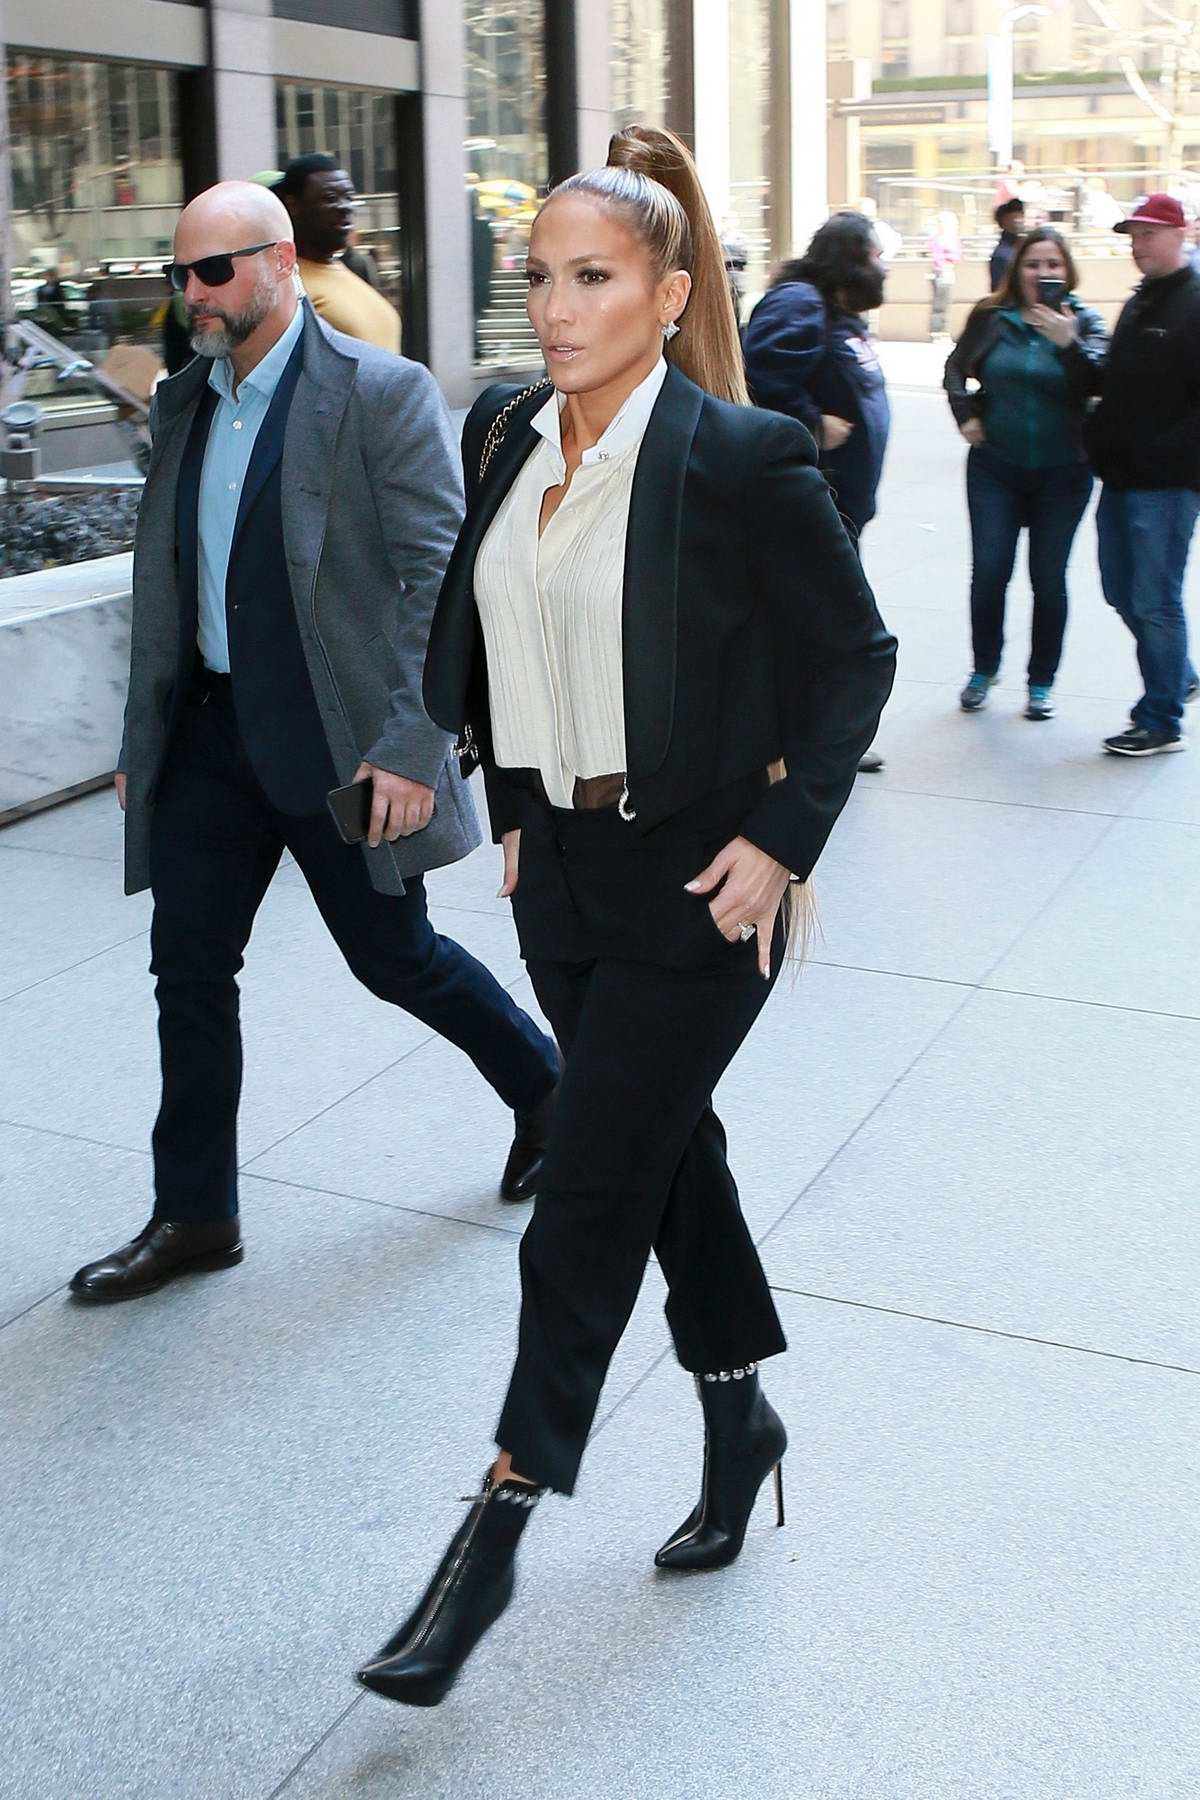 Jennifer Lopez wears a black suit as she heads to SiriusXM Radio in midtown Manhattan in New York City